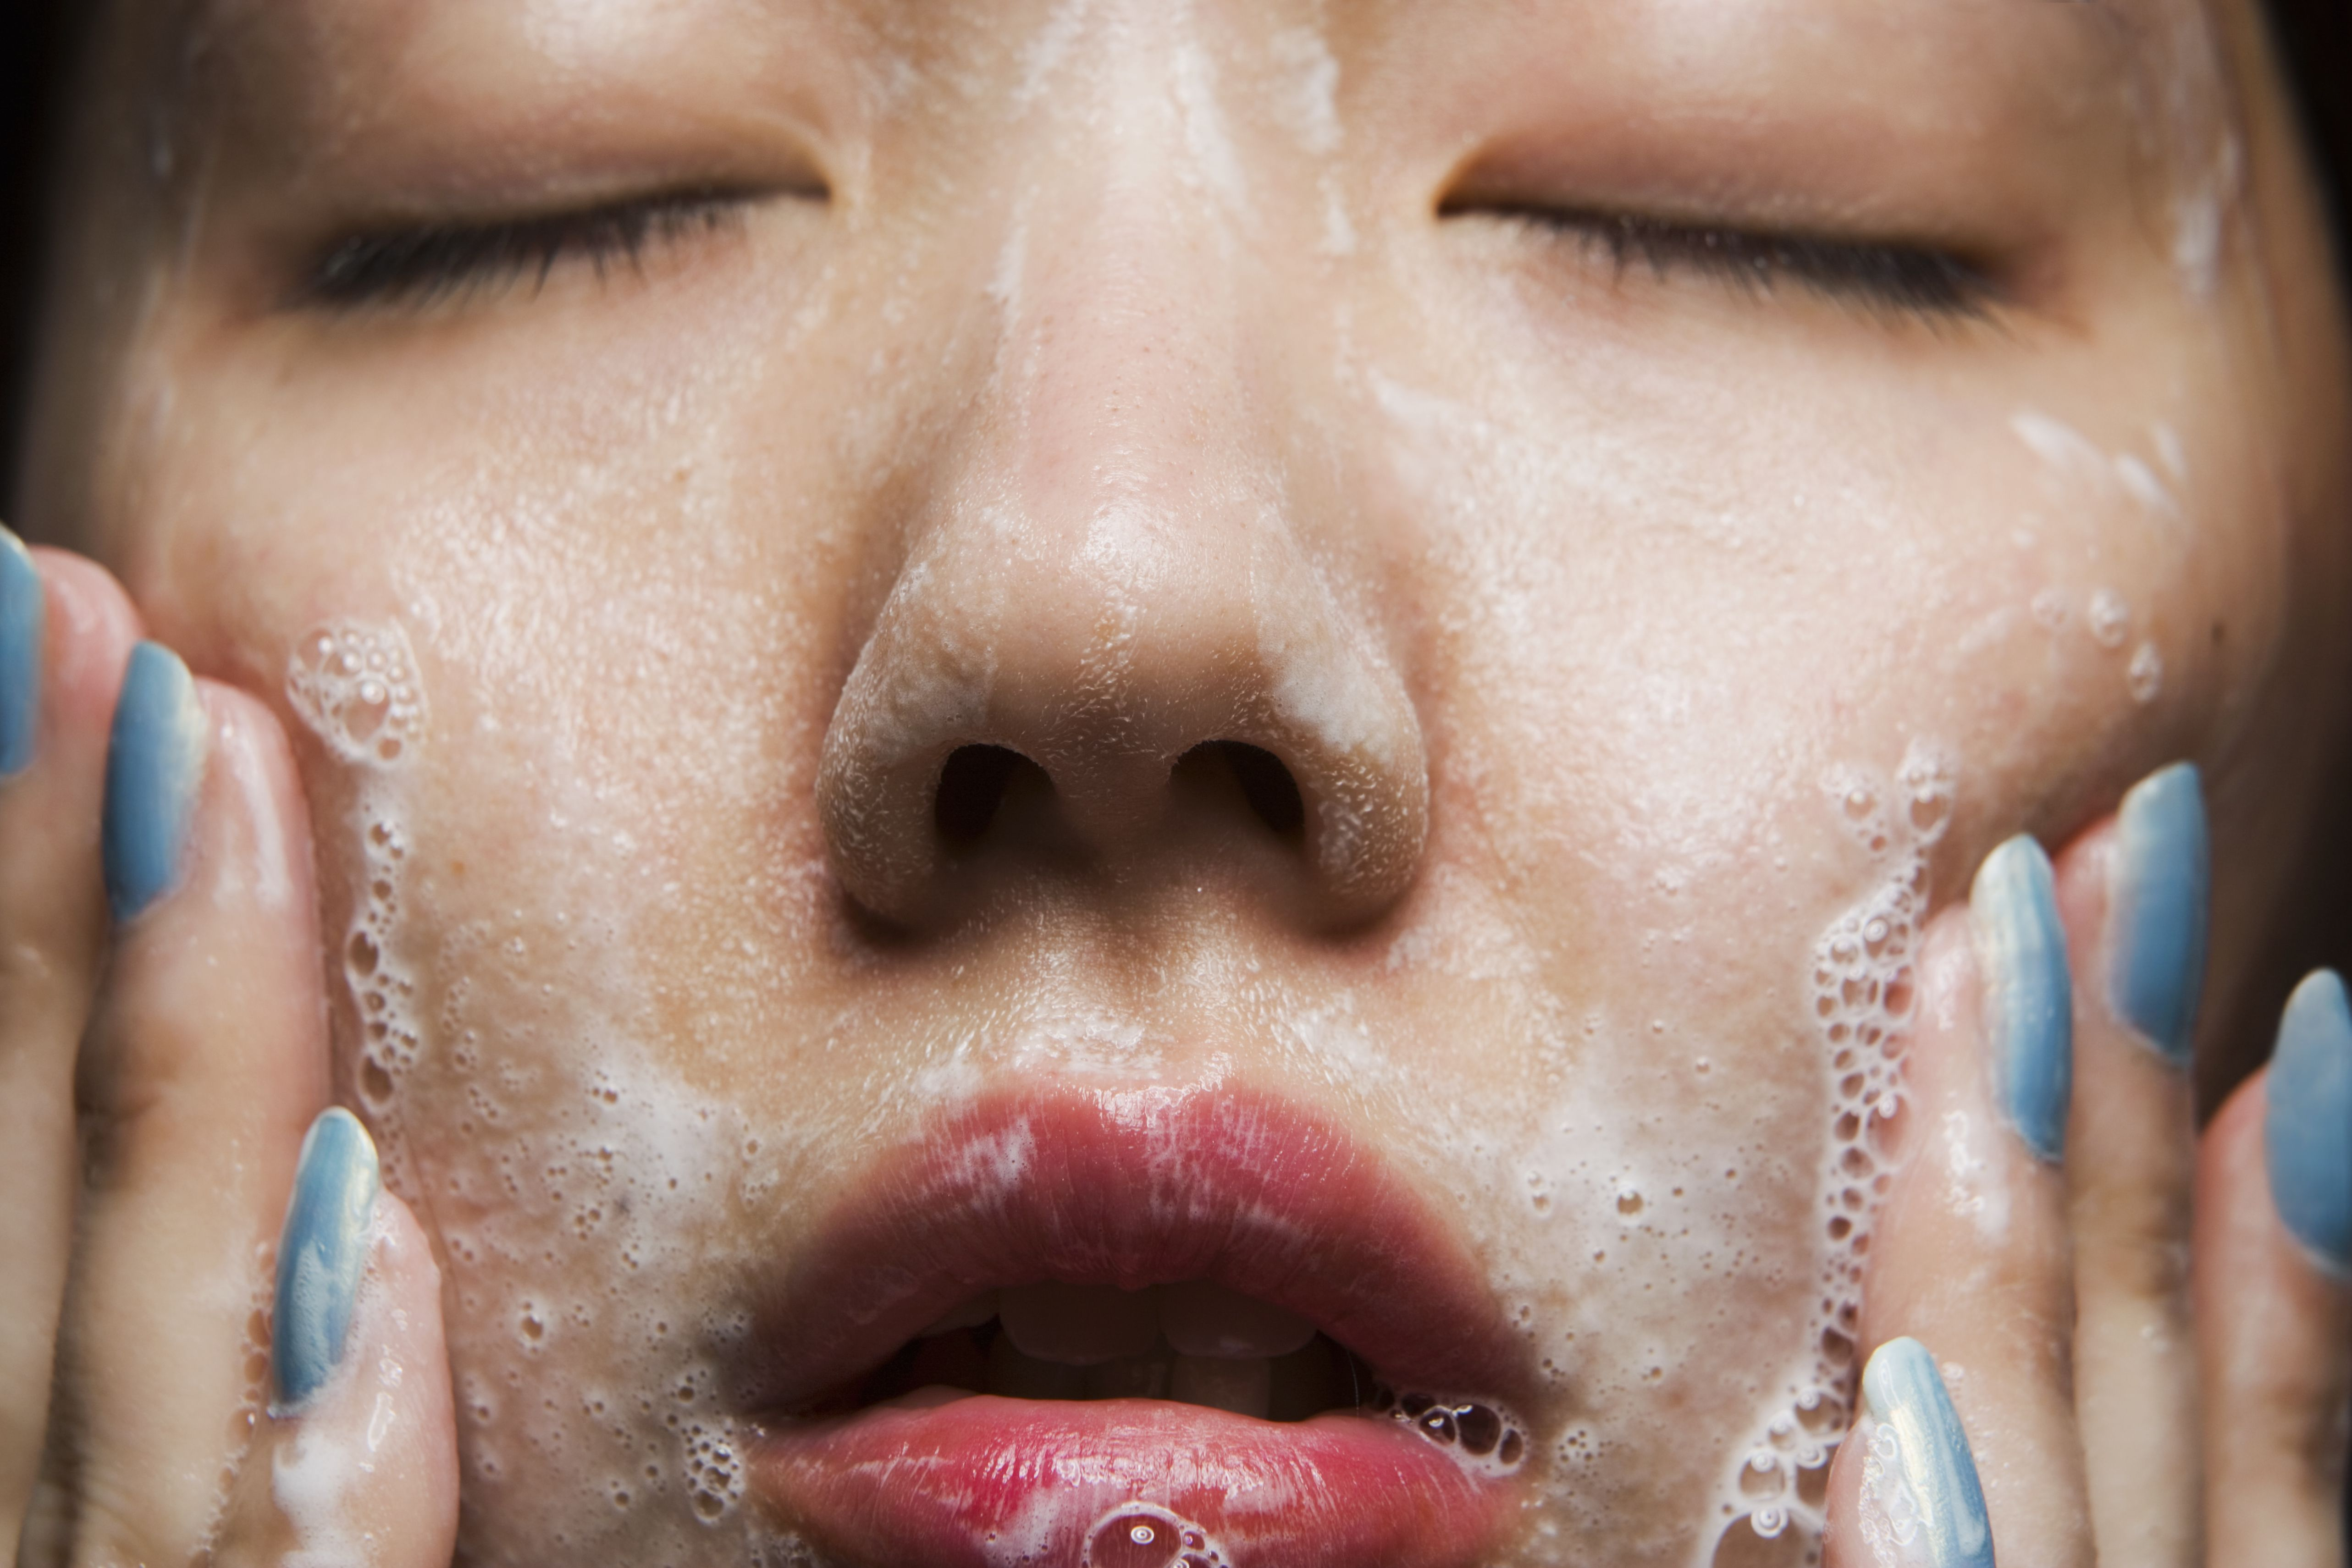 How To Wash Your Face Tips For Facial Cleansing From Experts